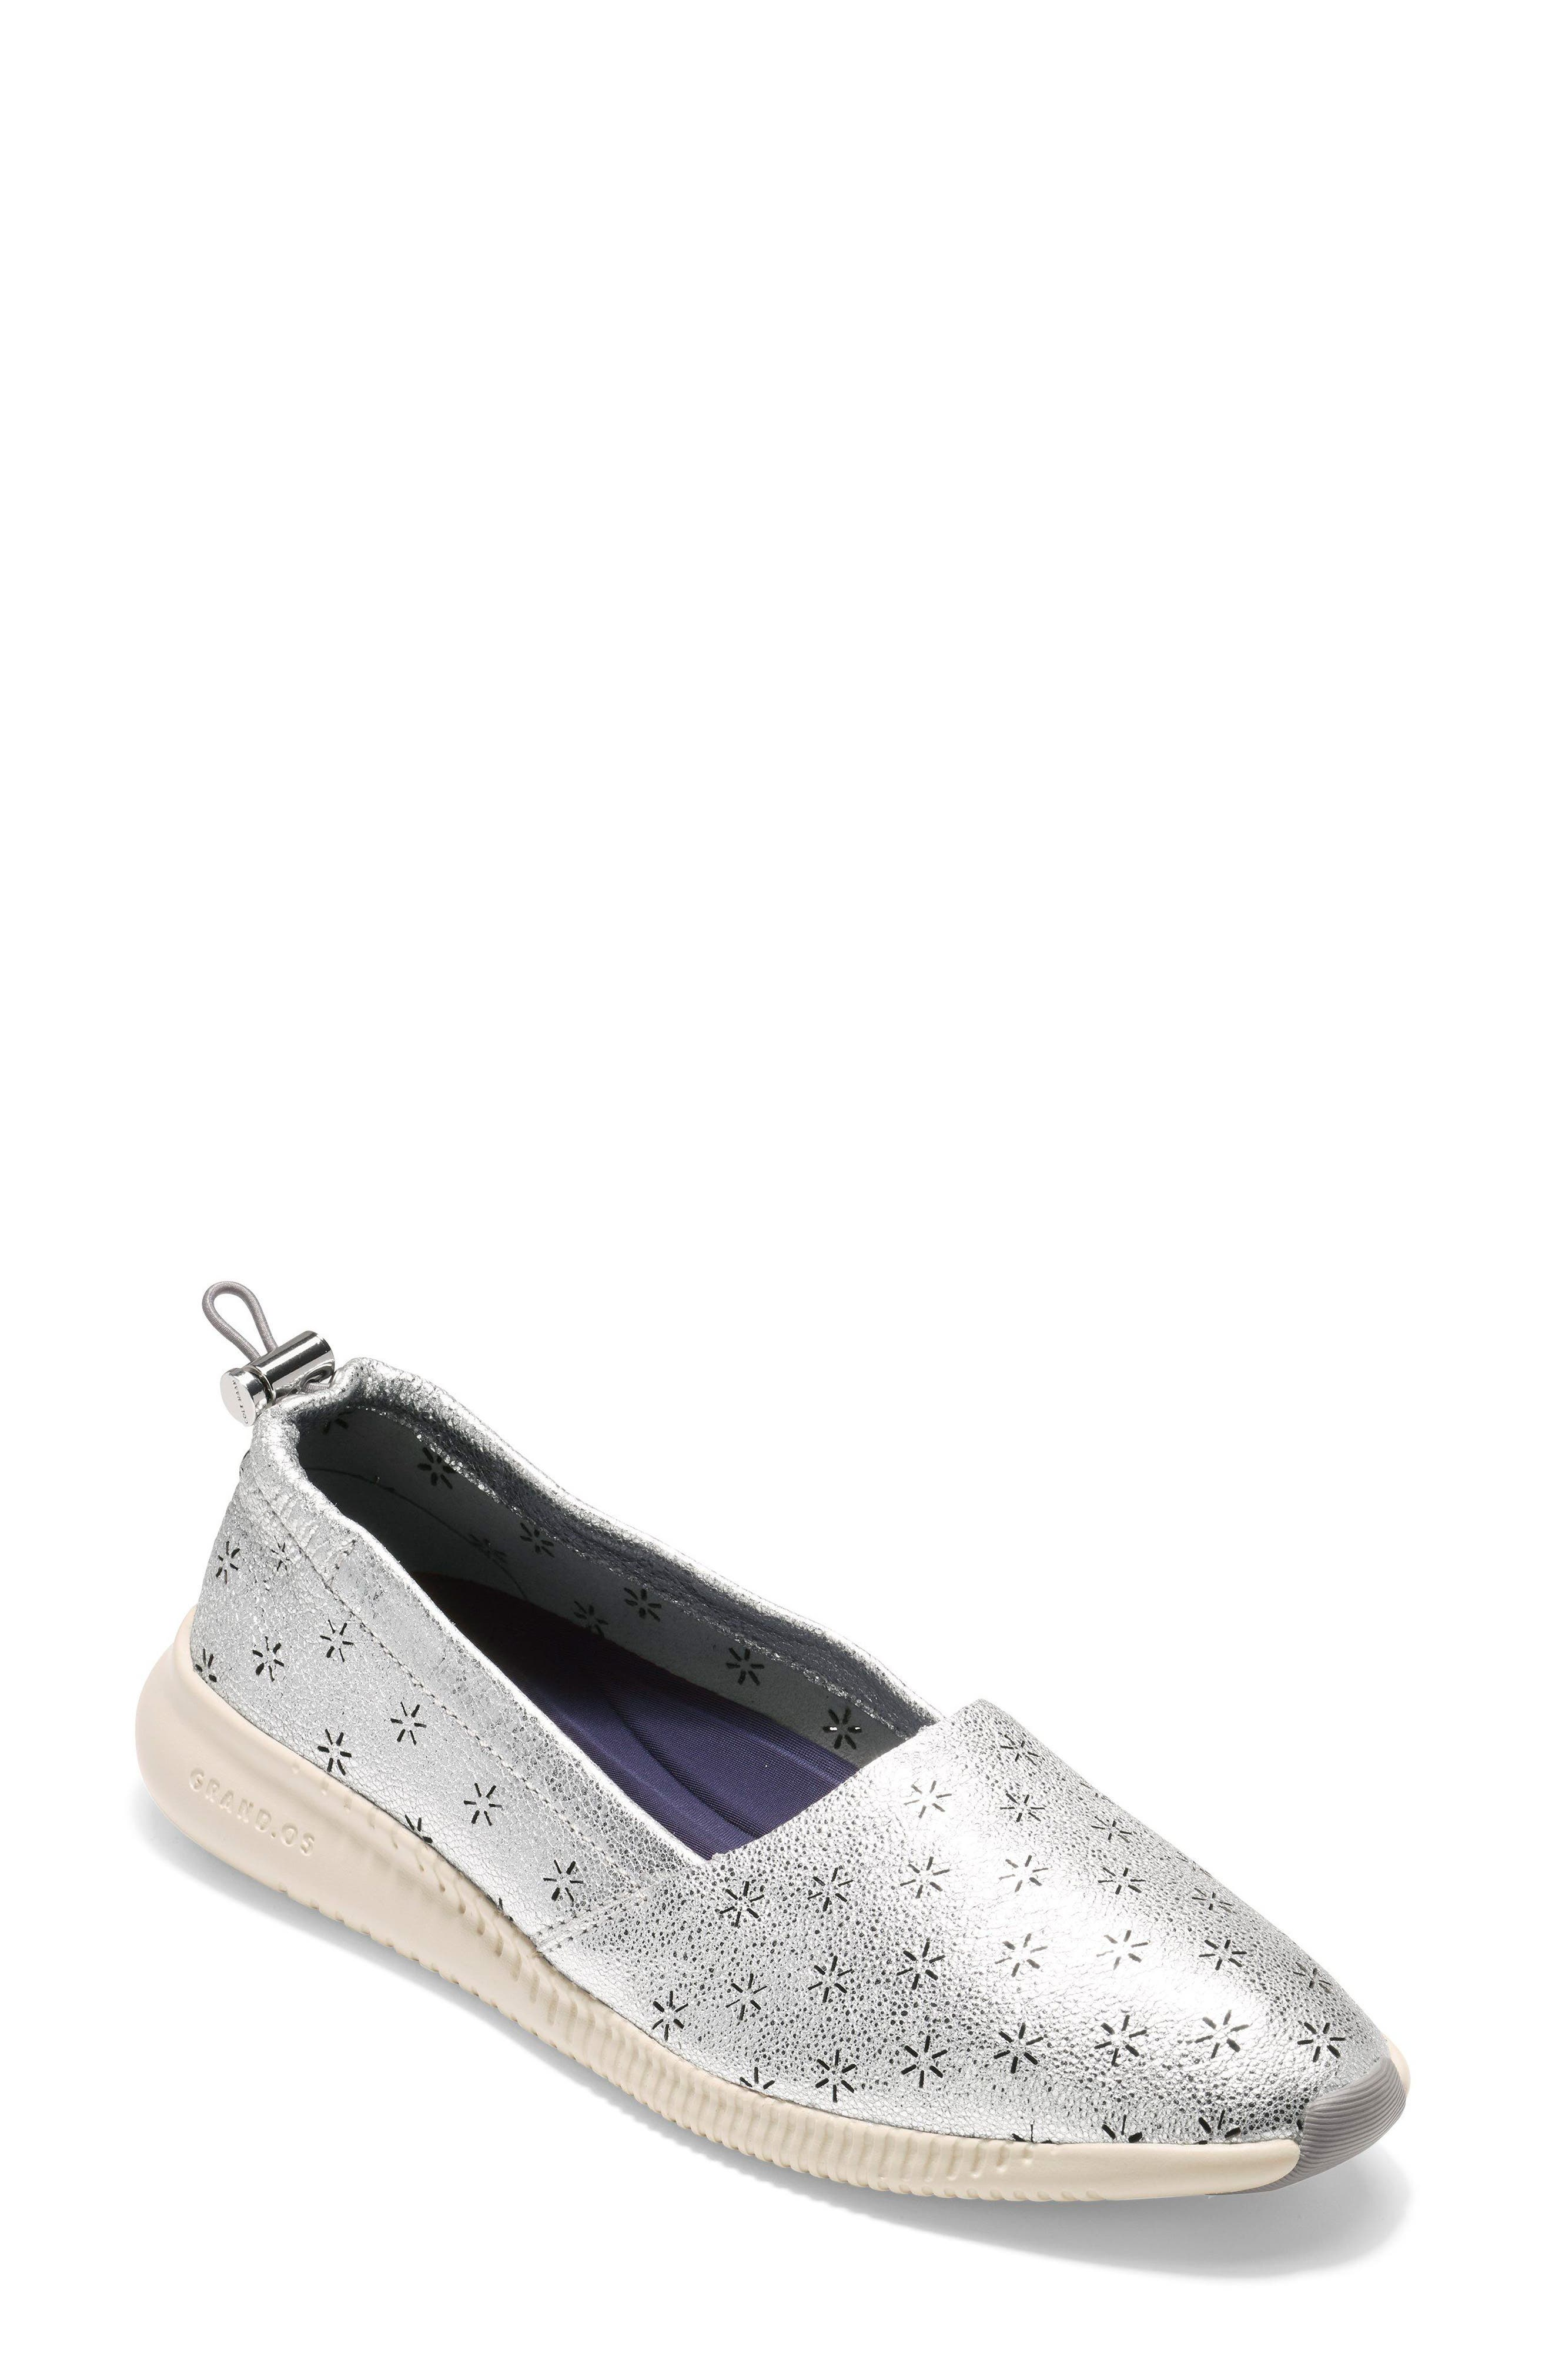 Studiogrand Perforated Slip-on,                             Main thumbnail 1, color,                             SILVER LEATHER